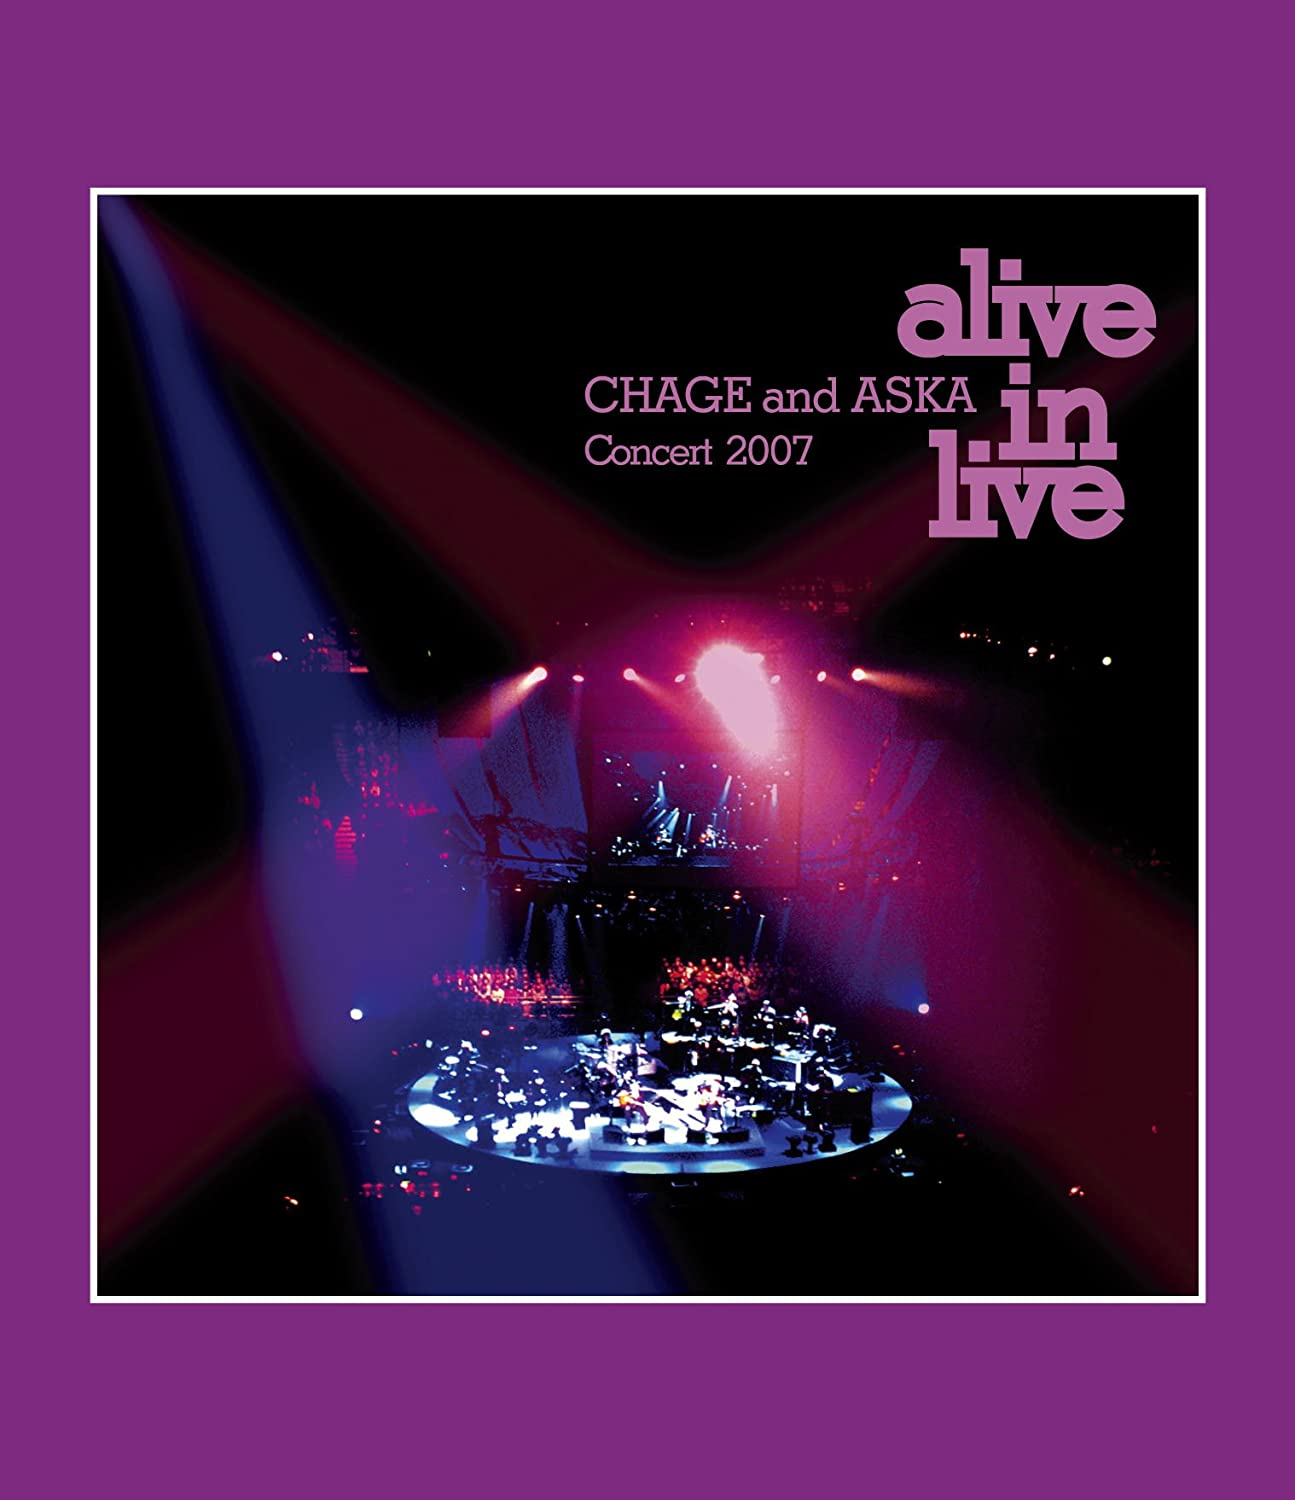 CHAGE and ASKA Concert 2007 alive in live [Blu-ray] B007FGQU1K